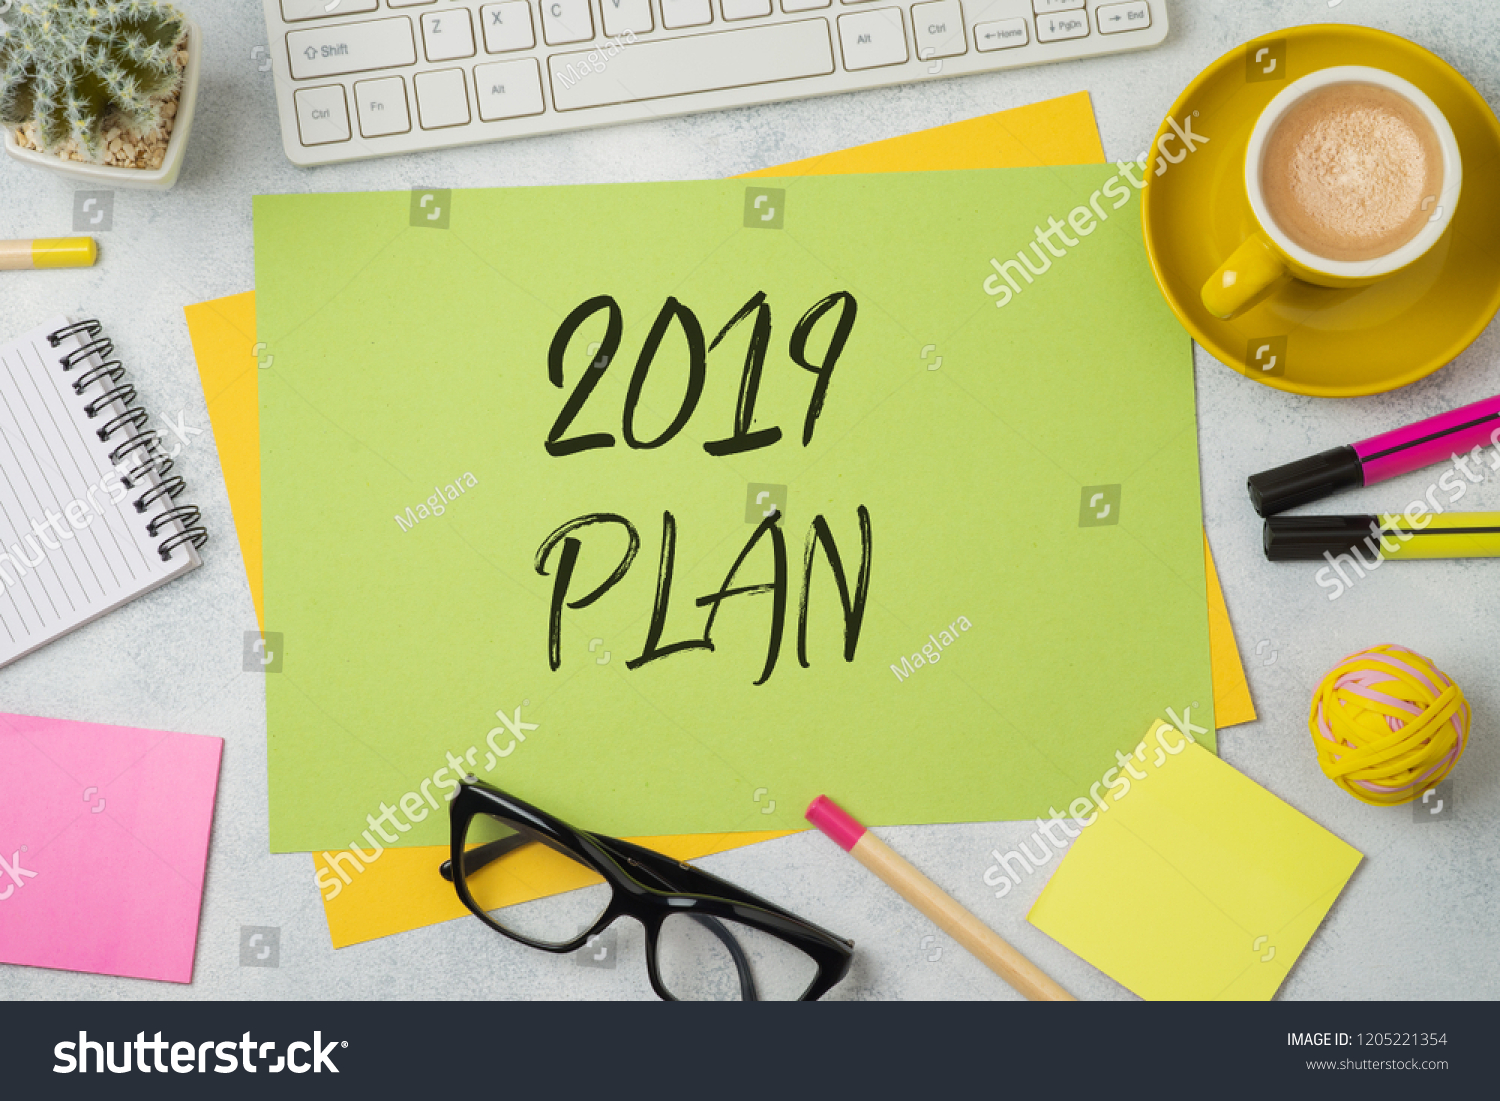 2019 plan text on colorful paper memo note with business office accessories. Top view from above #1205221354